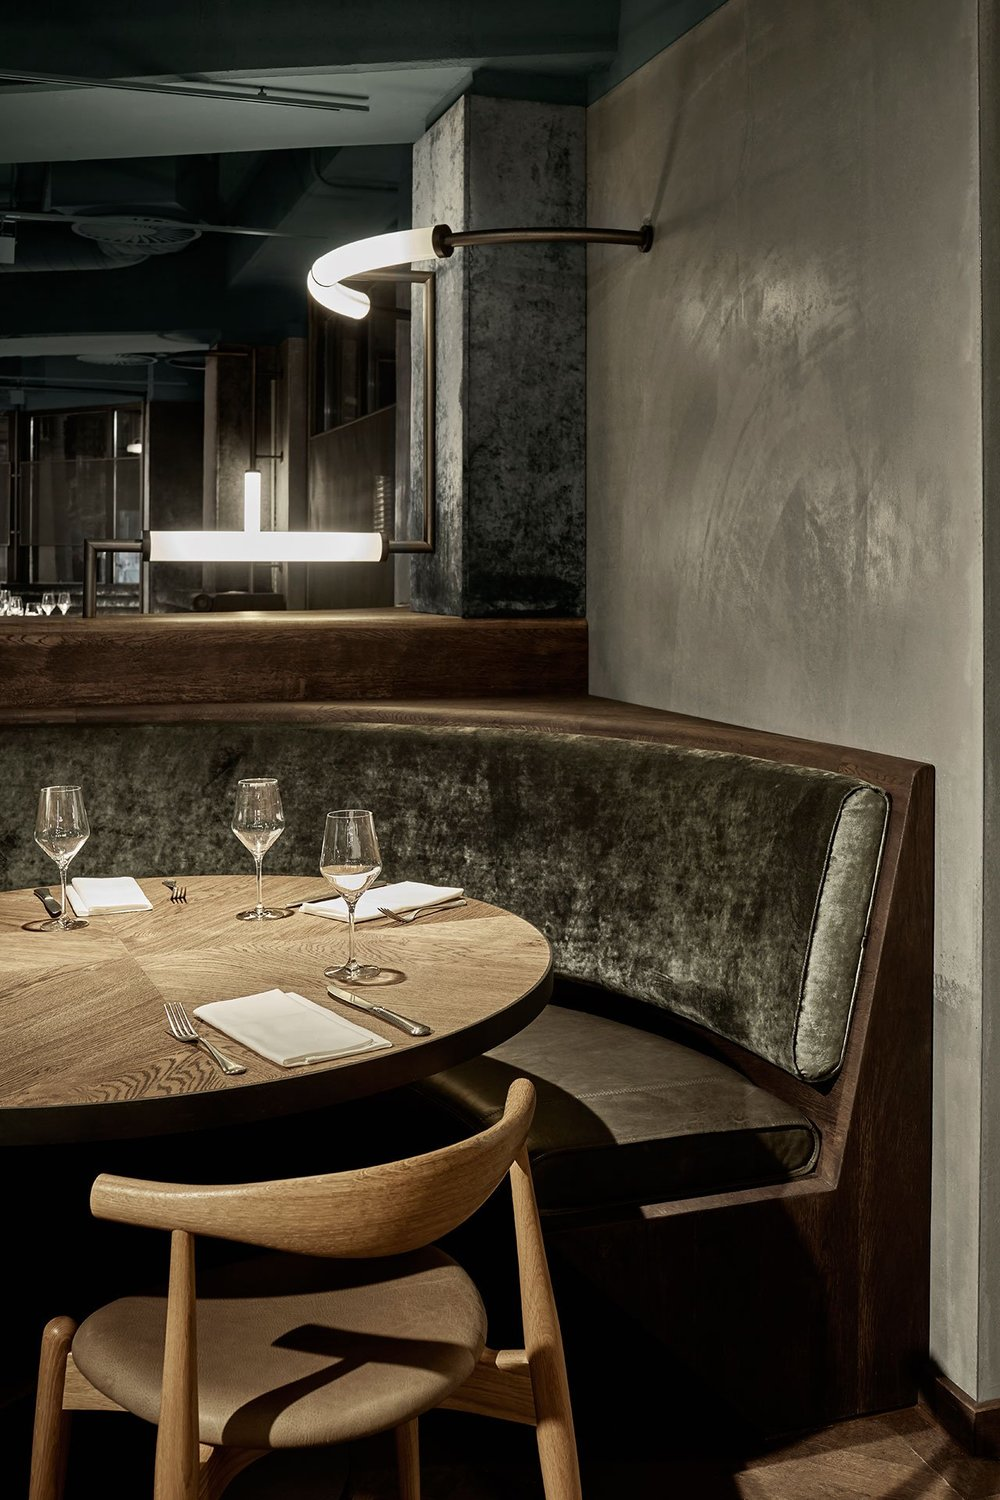 s6_restaurant_wyers_and_miss_louisa_amsterdam_the_netherlands_studio_modijefsky_yatzer.jpg